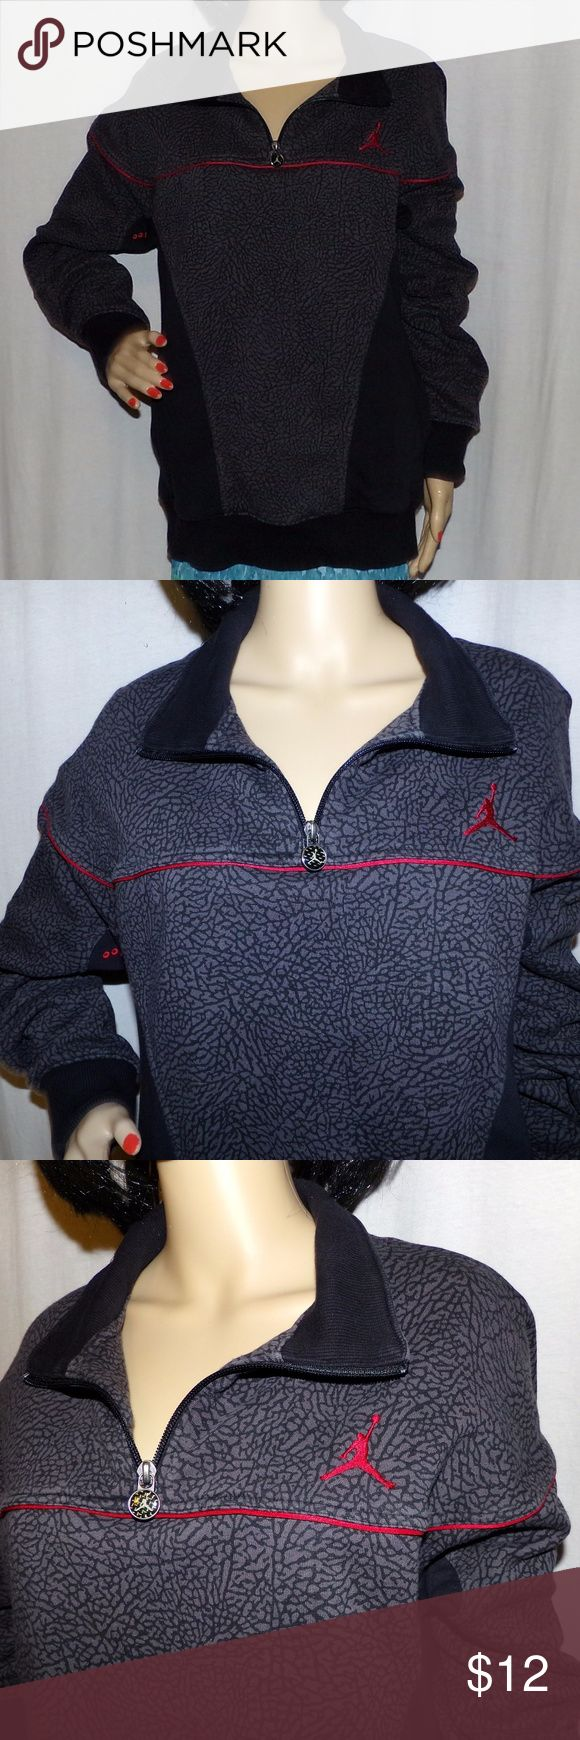 """Michael Jordan Pullover Shirt, Stylish Michael Jordan Pullover Shirt, Stylish with the Jumping Jordan Logo Embroidered Zips size L Low & Fast Shipping, Stylish with the Jumping Jordan Logo Embroidered on it. It is a cool gray and black pattern with red pinstripes and the red logo!  This looks nearly in nearly new condition. Measurements L-20""""/W-40-41. Model's Measurements 32-24-33 BUNDLE & SAVE More or make us an OFFER the Fairies here love OFFERS Jordan Shirts Polos"""